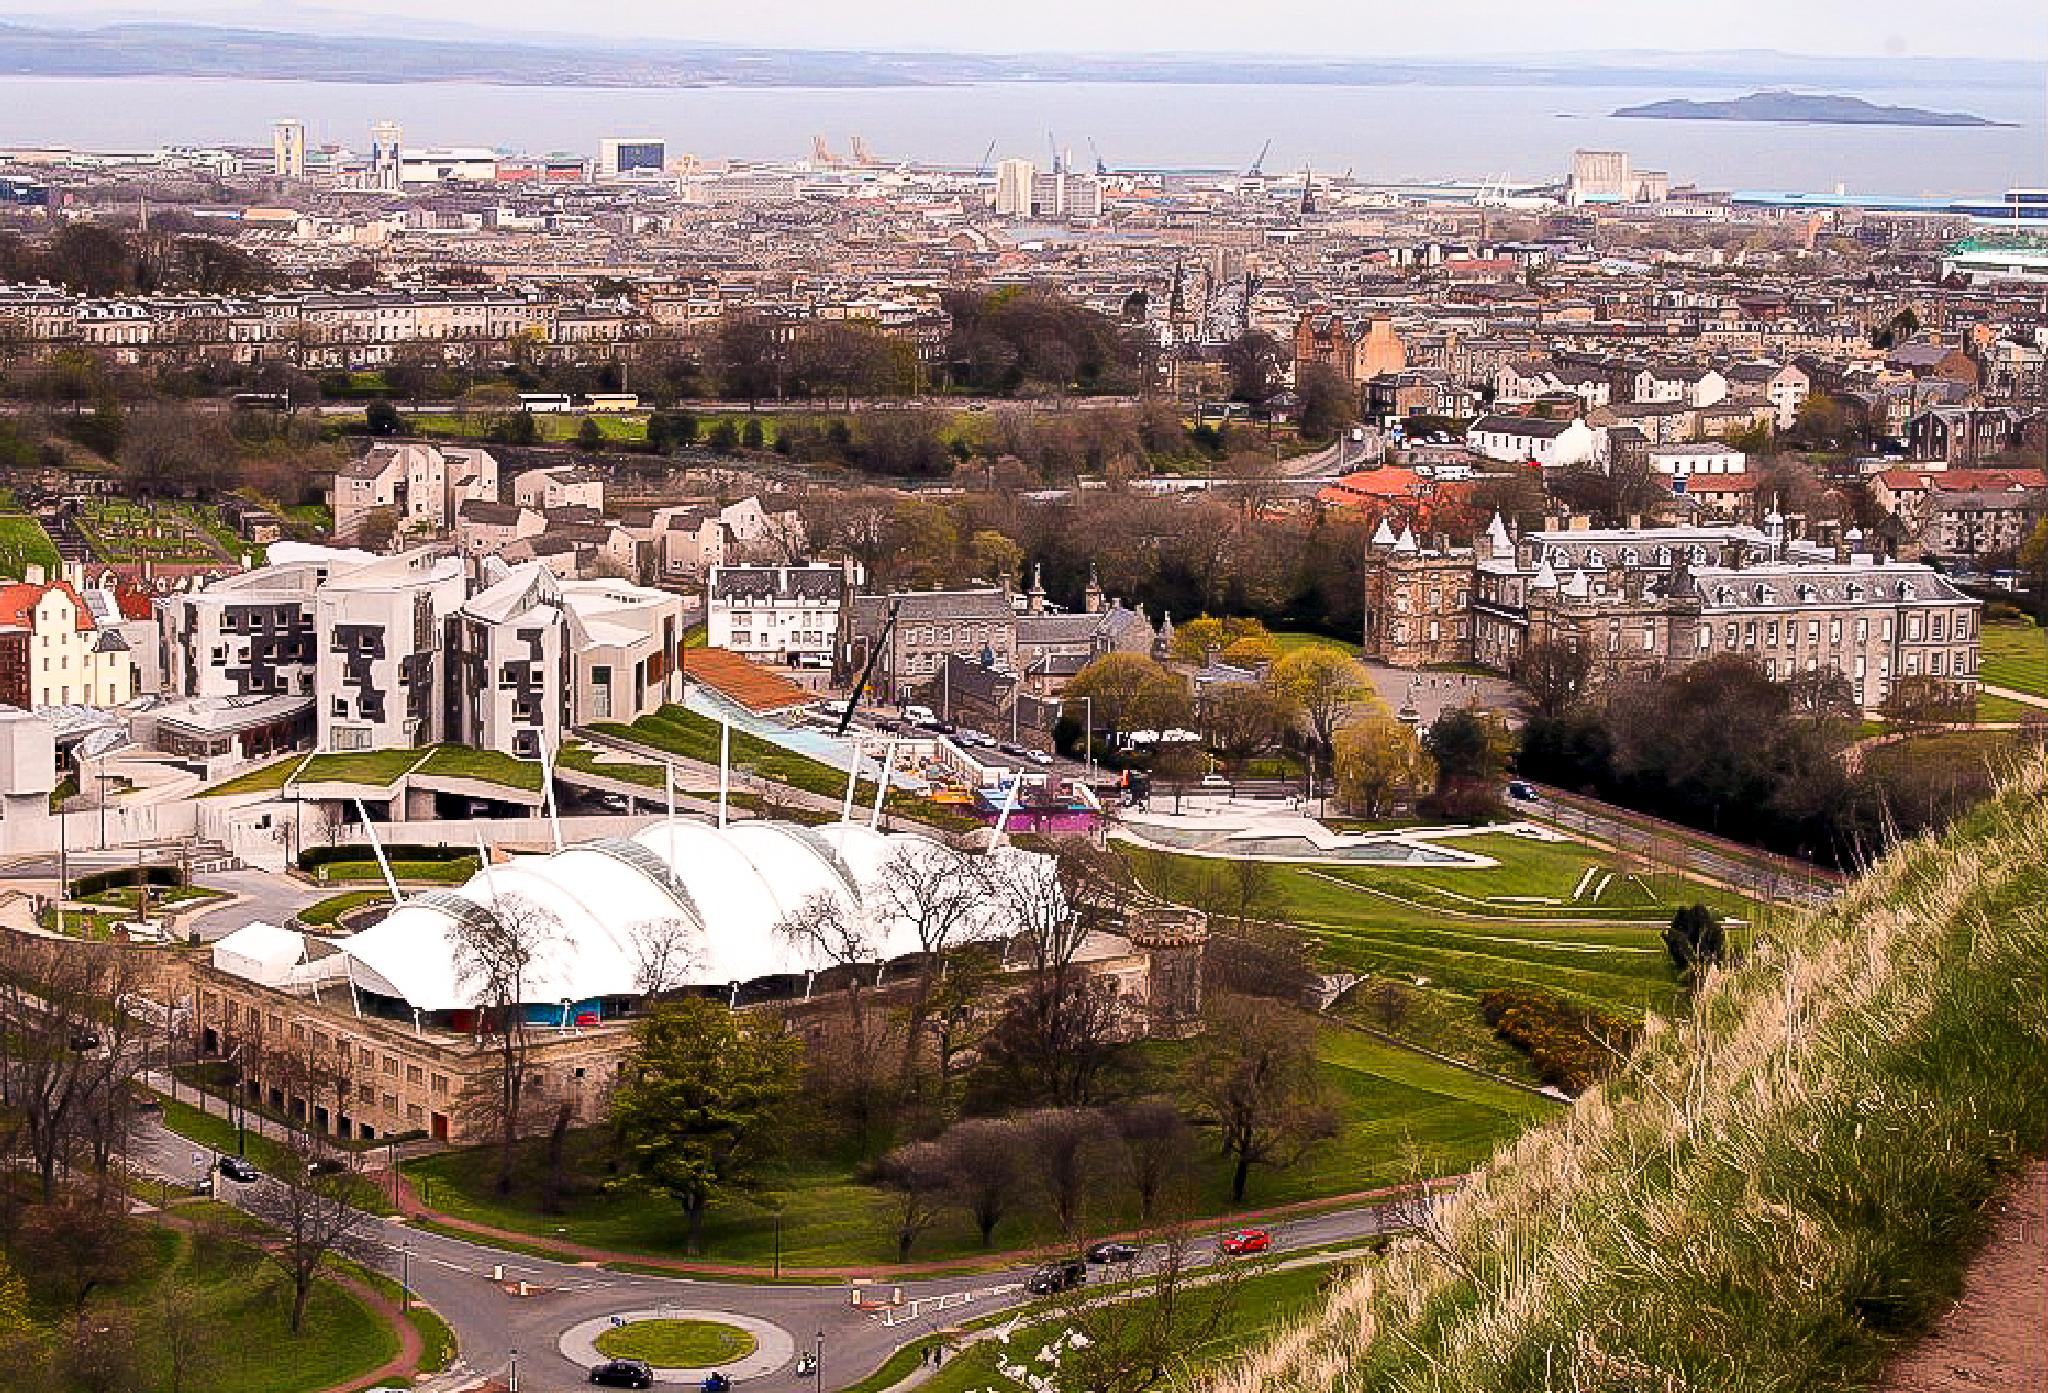 A view from Salisbury Crags - Edinburgh by bob.cunningham.56884